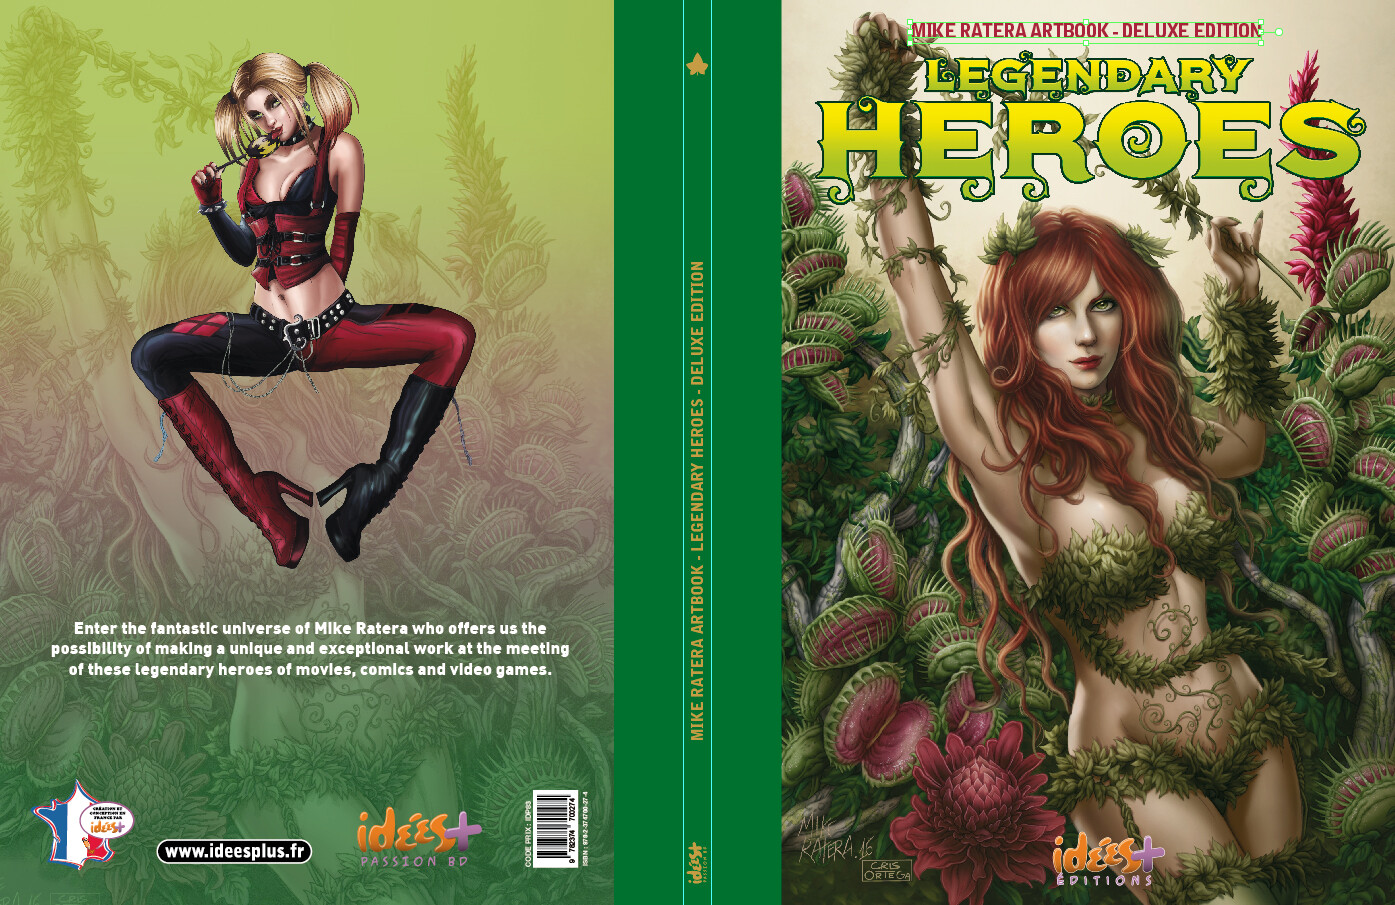 Mike ratera legendary heroes tl cover c1 c4